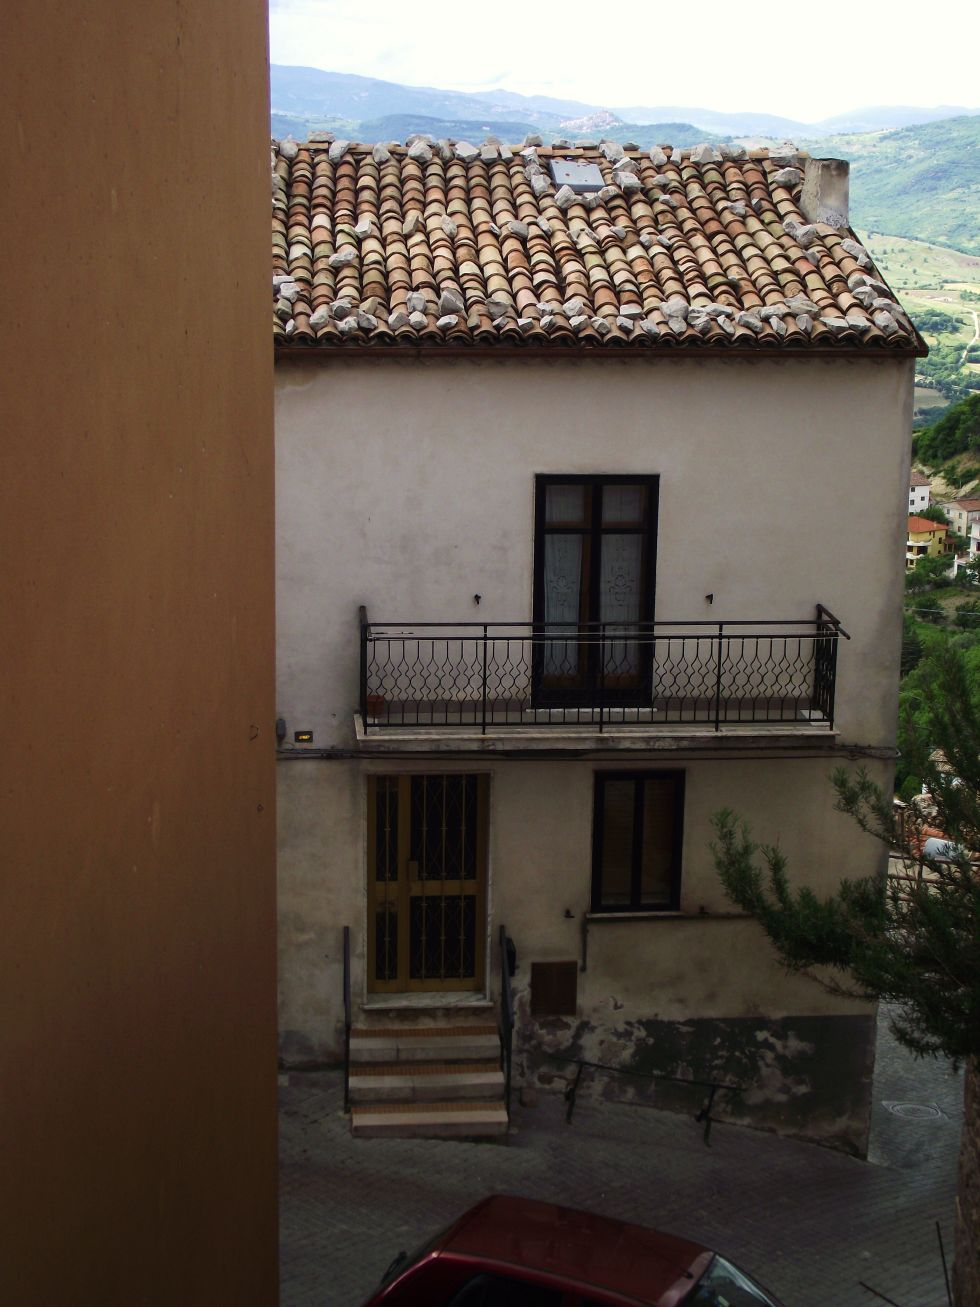 Three bed town house to buy with panoramic view in Molise